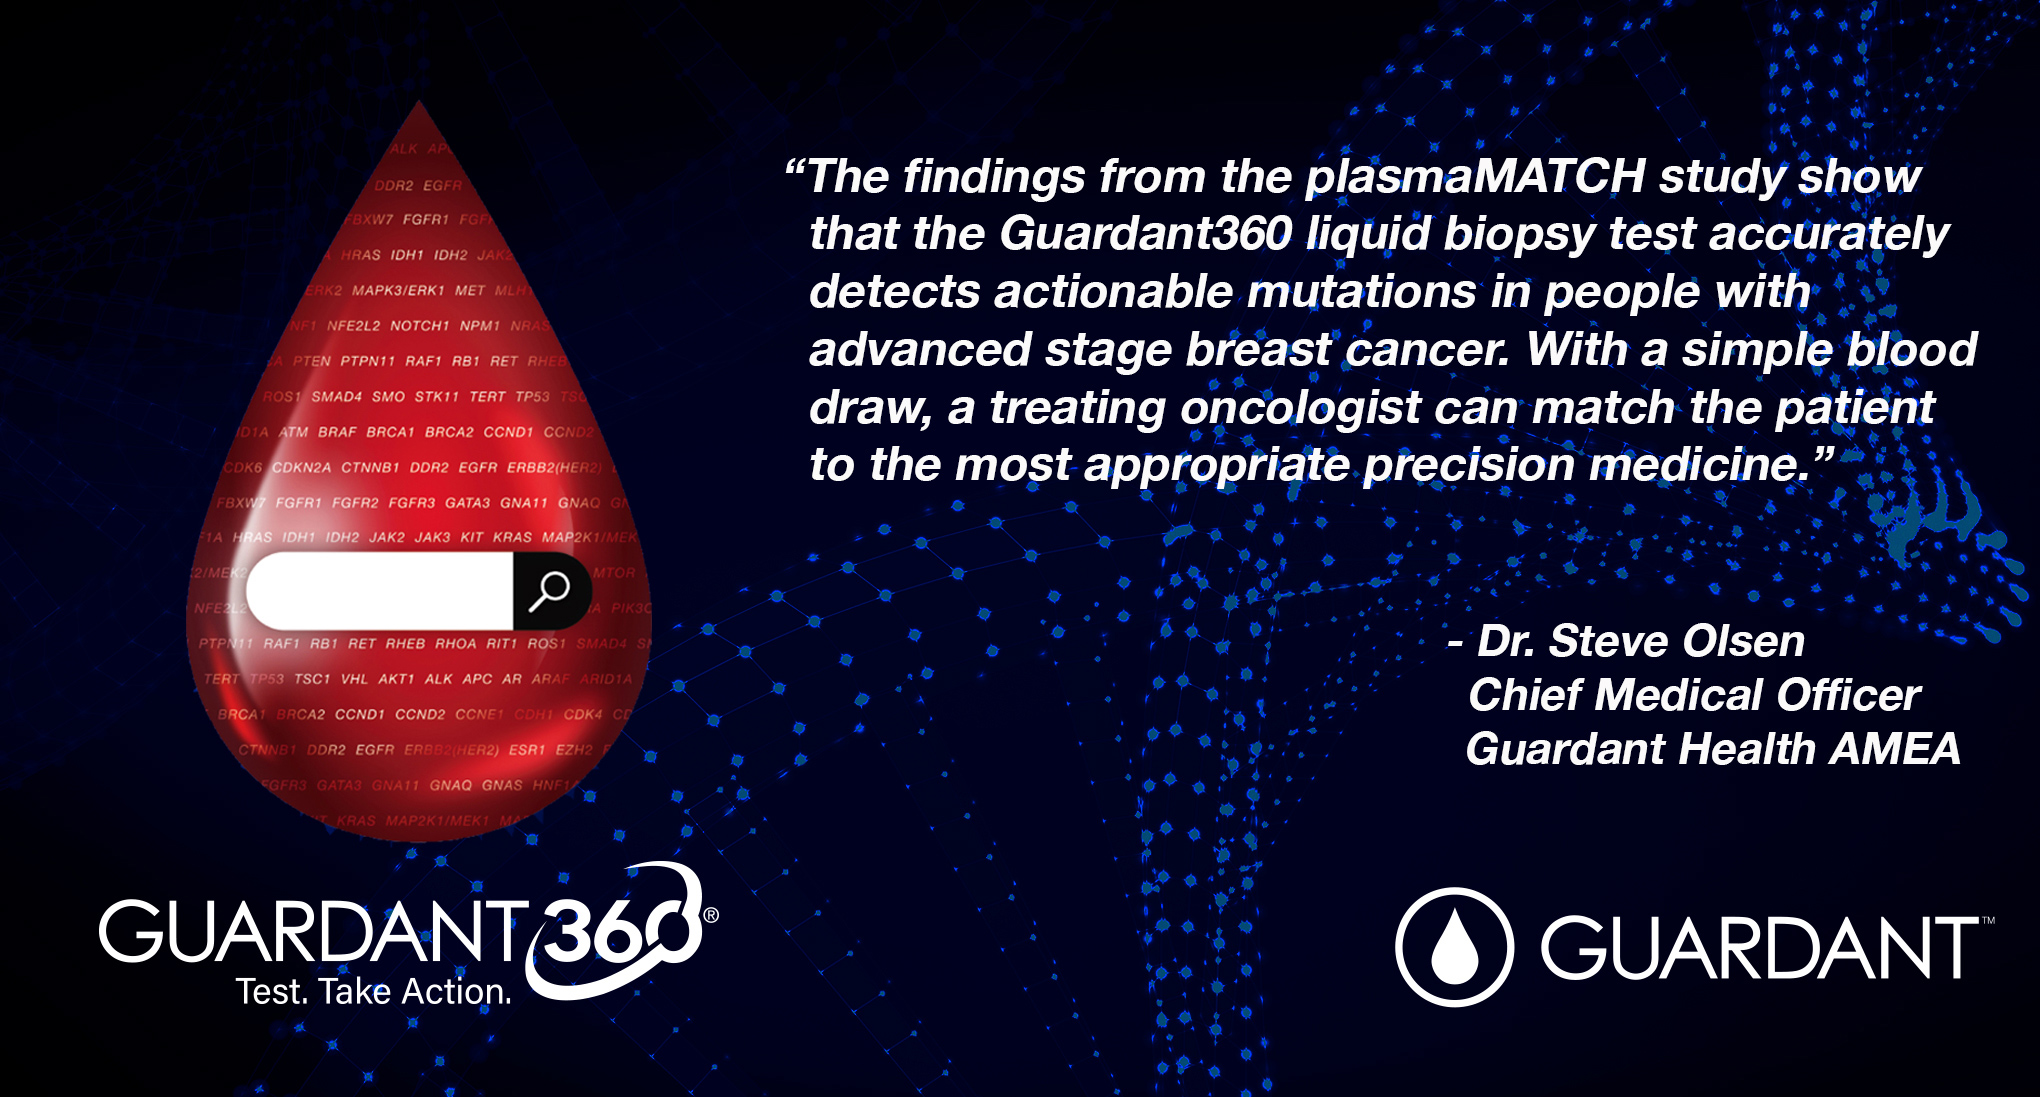 GH AMEA's Chief Medical Officer, Dr.Steve Olsen, sharing his thoughts on the use of the Guardant360 test in the plasmaMATCH trial